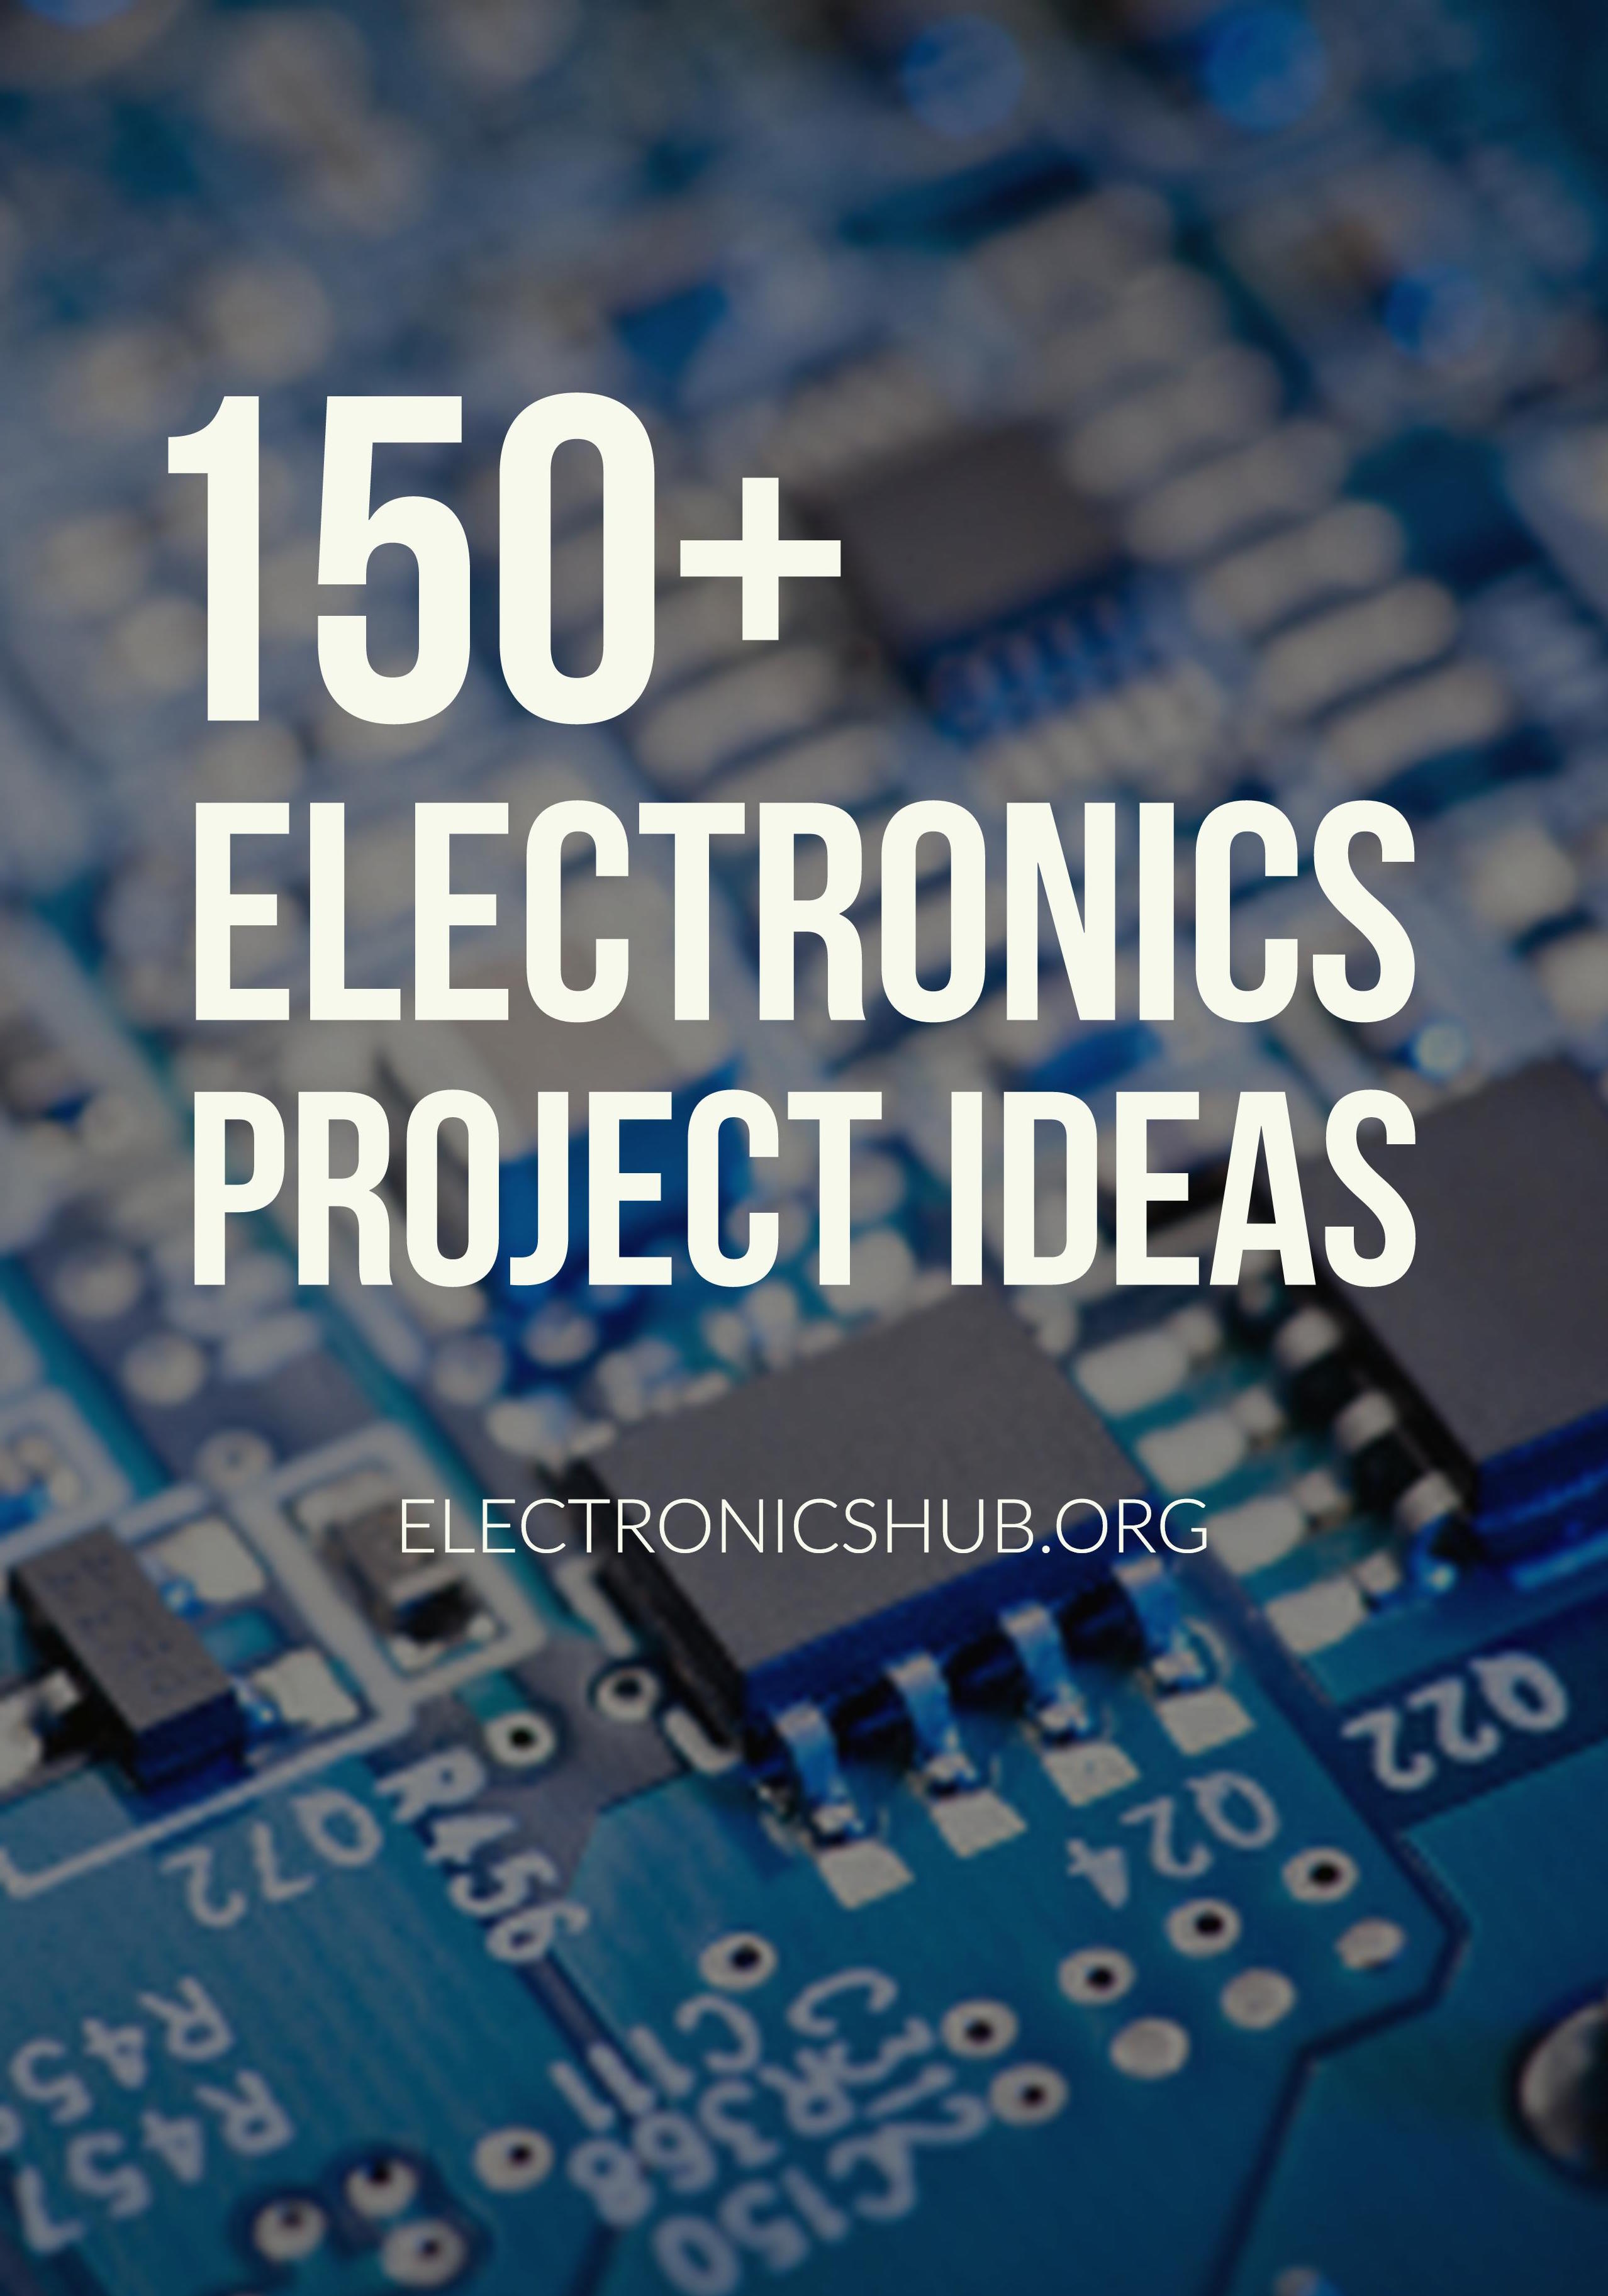 150 electronics projects for engineering studentsElectronics Projecthow To Make Led Display Board Btech Projects #14